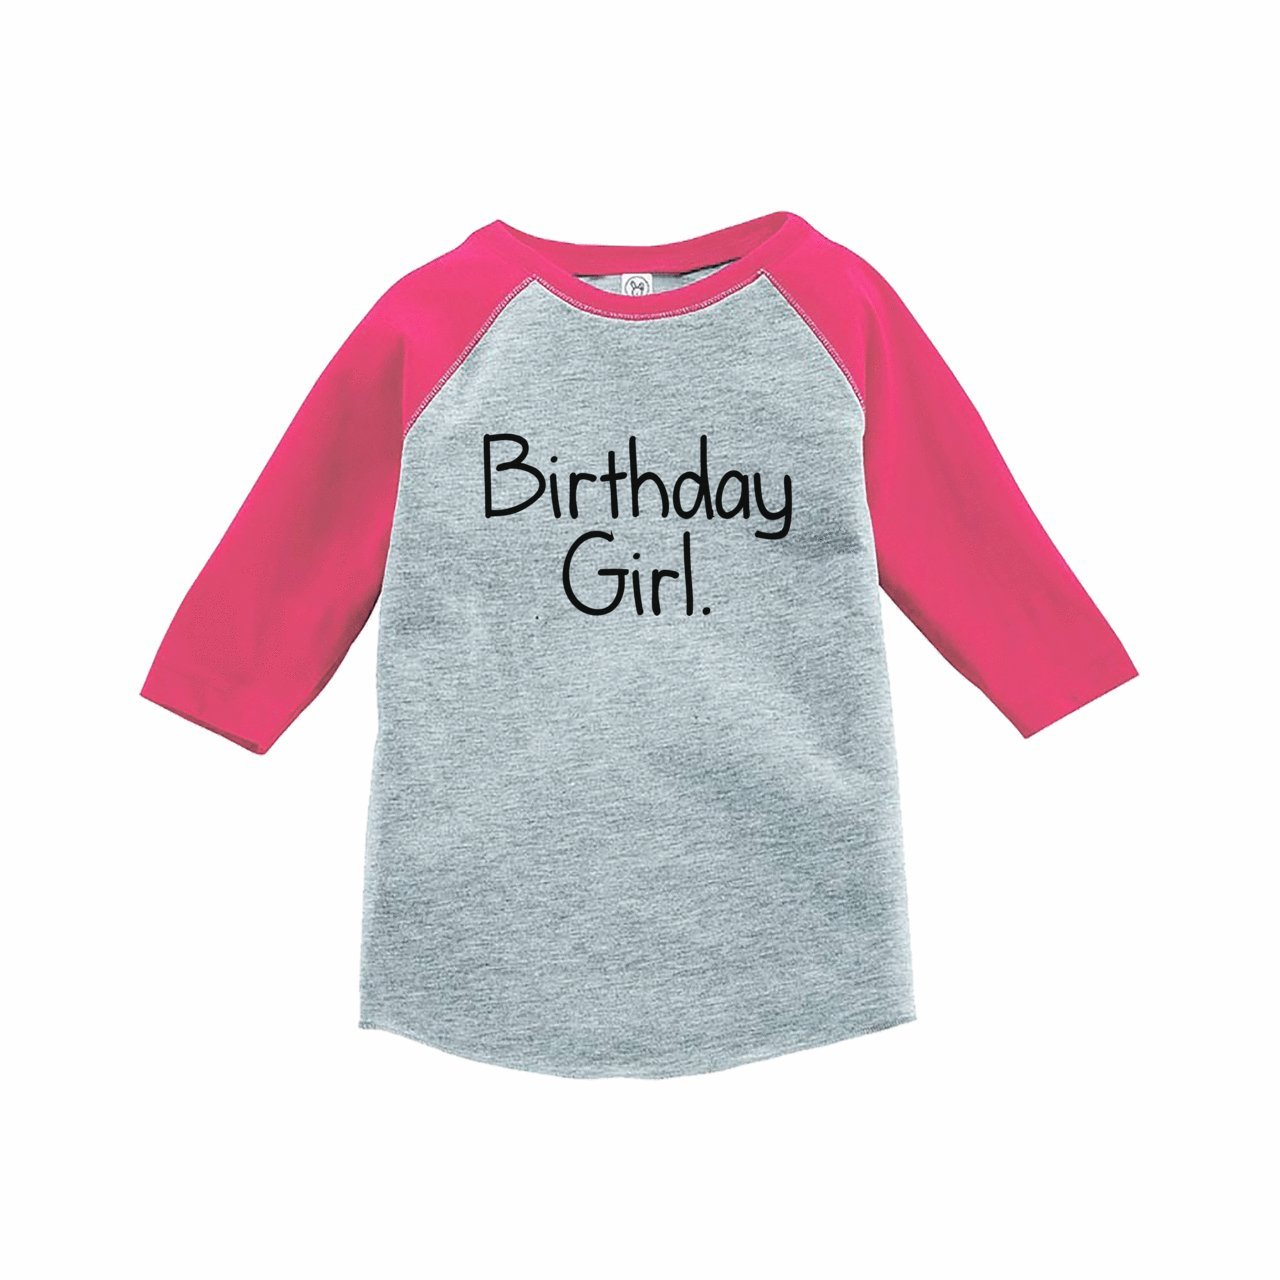 7 ate 9 Apparel Girls Birthday Girl Onepiece